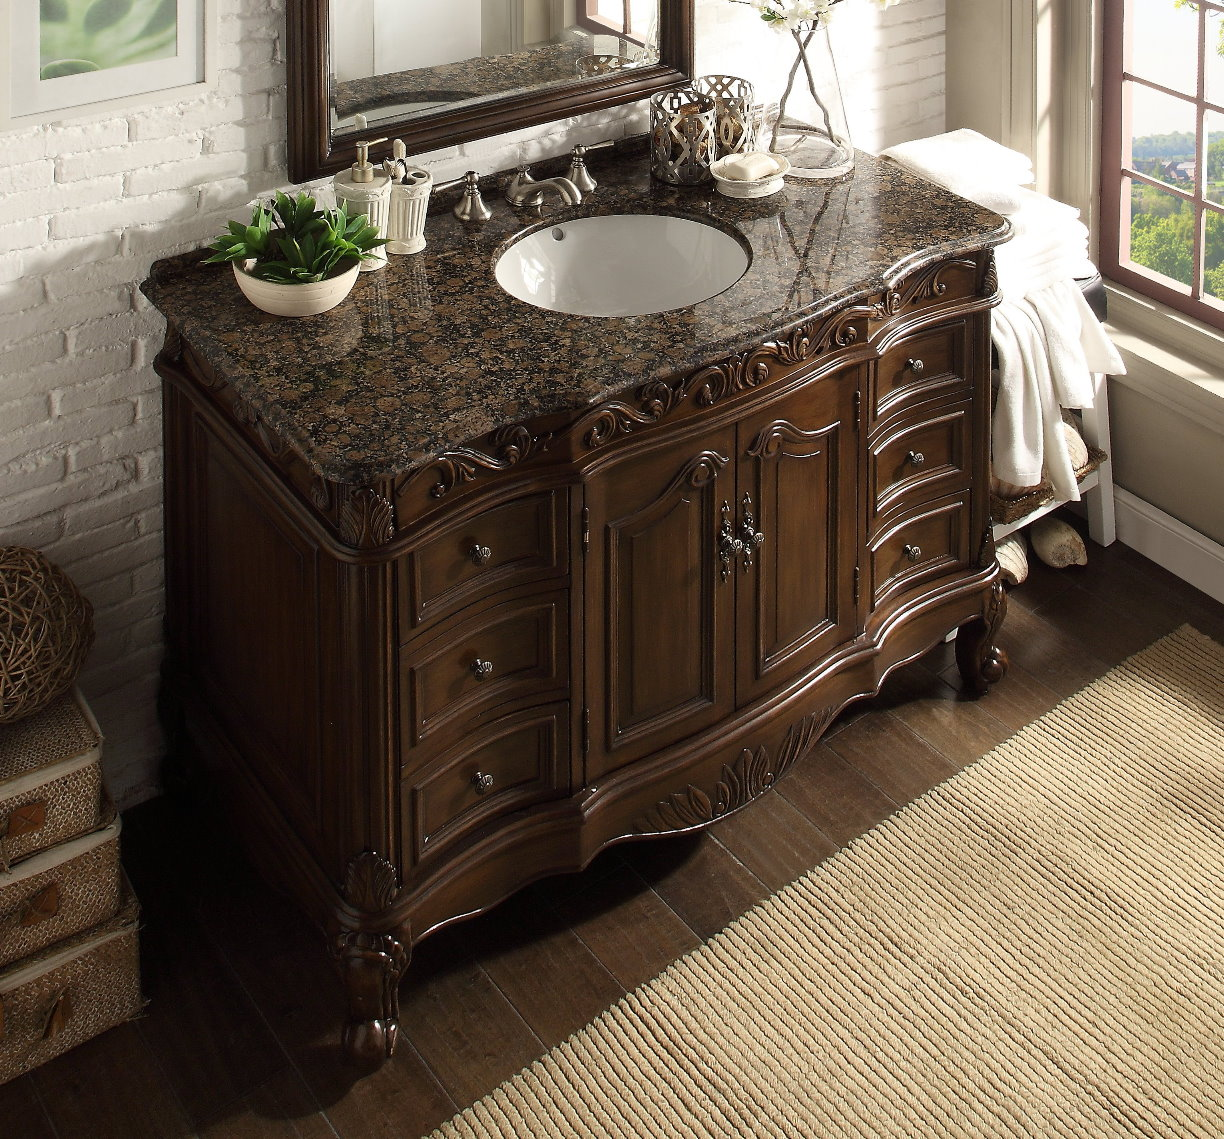 Vanity With Granite Top : Adelina inch classic old look bathroom vanity sierra